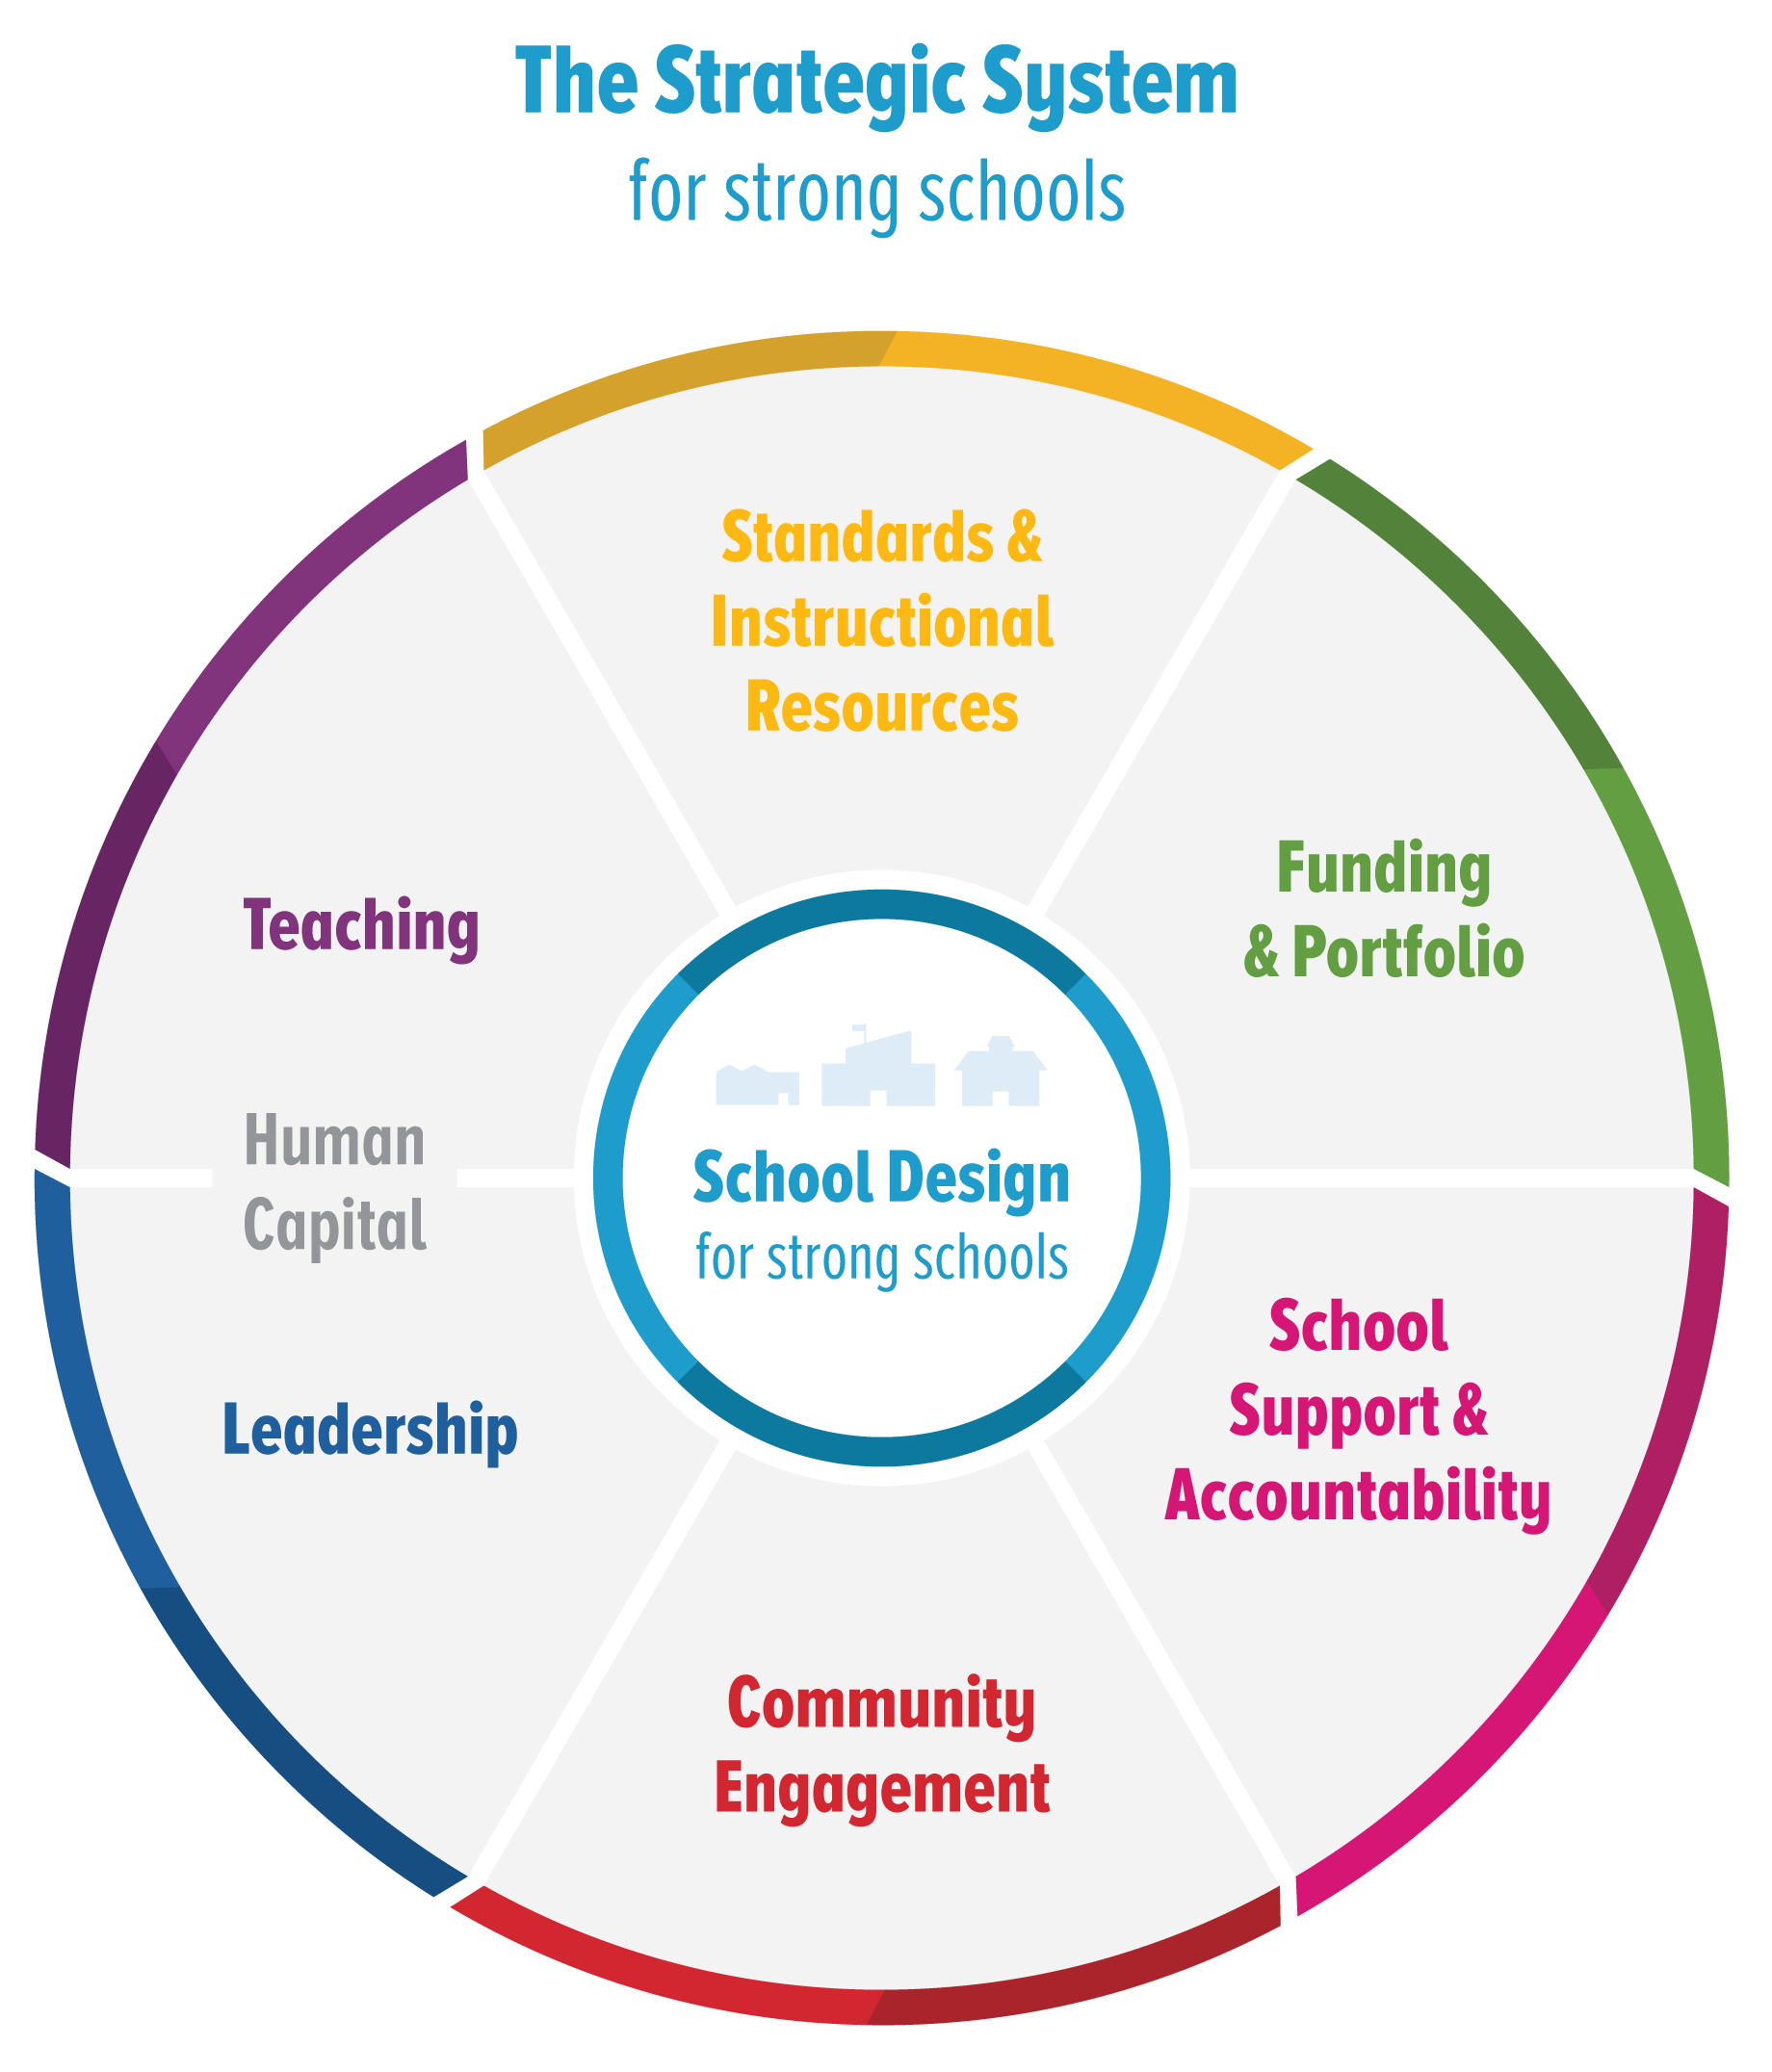 education resource strategies urban school resource organization